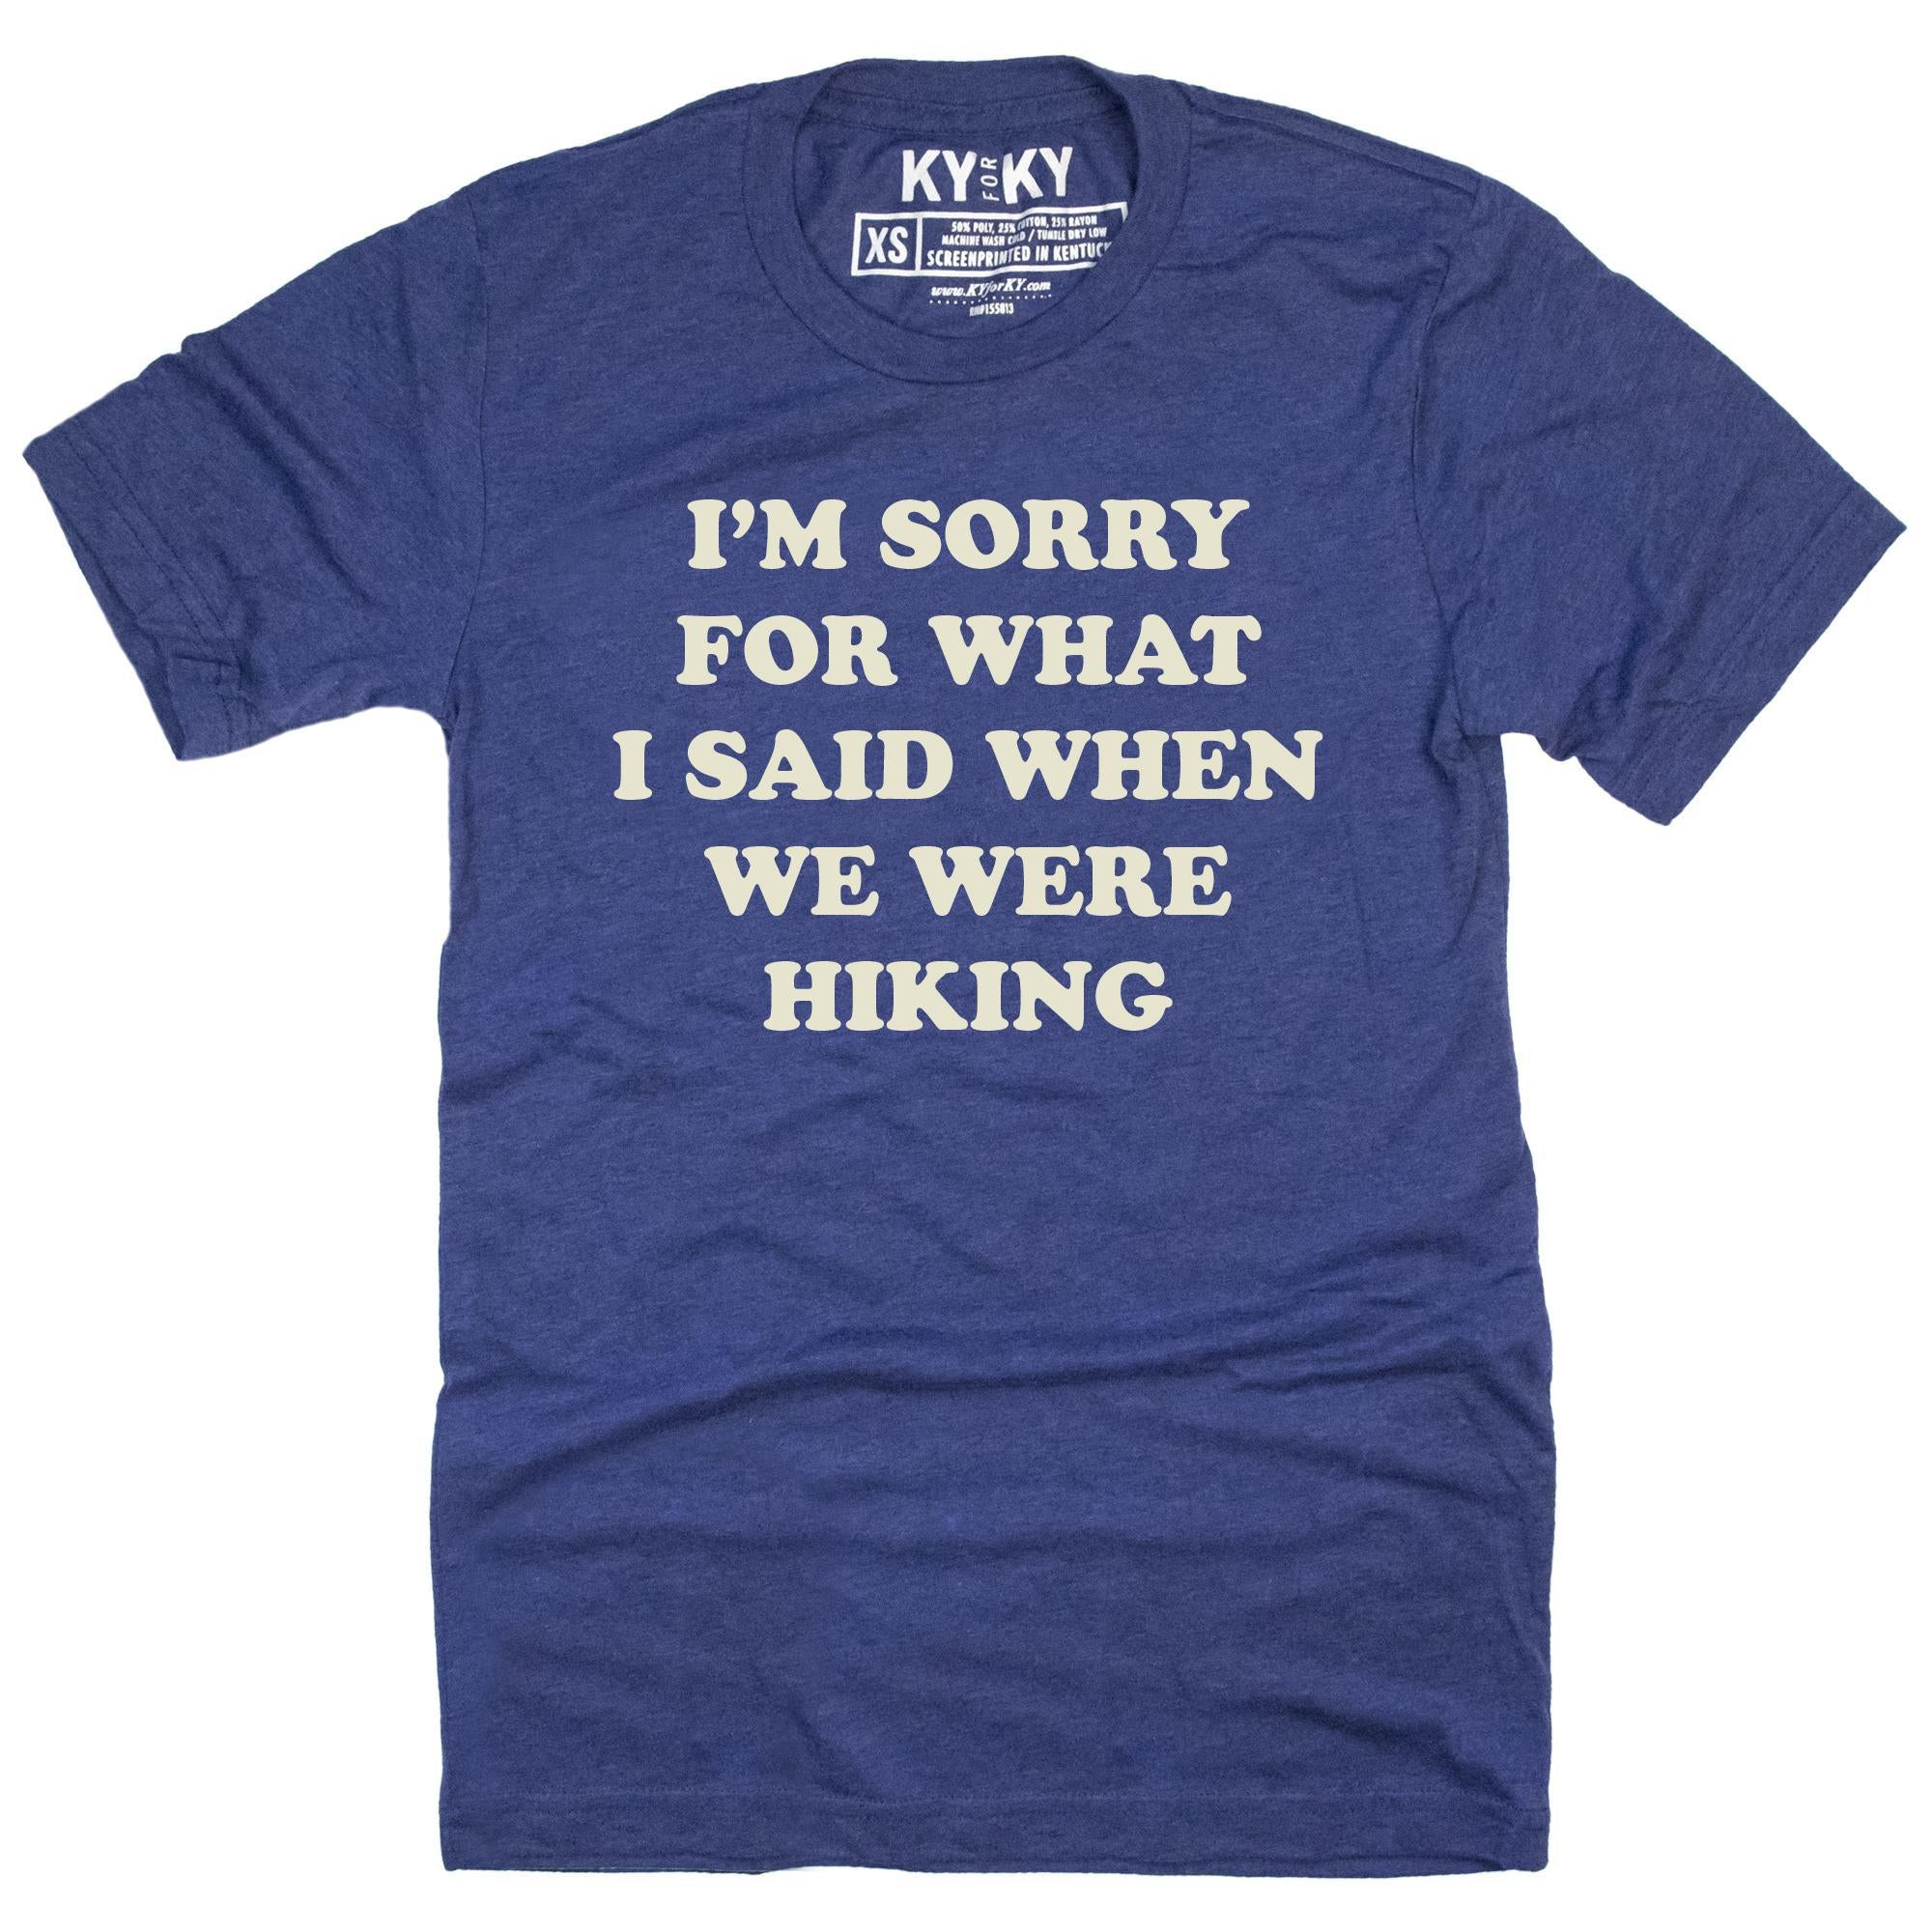 I'm Sorry For What I Said When Hiking T-Shirt